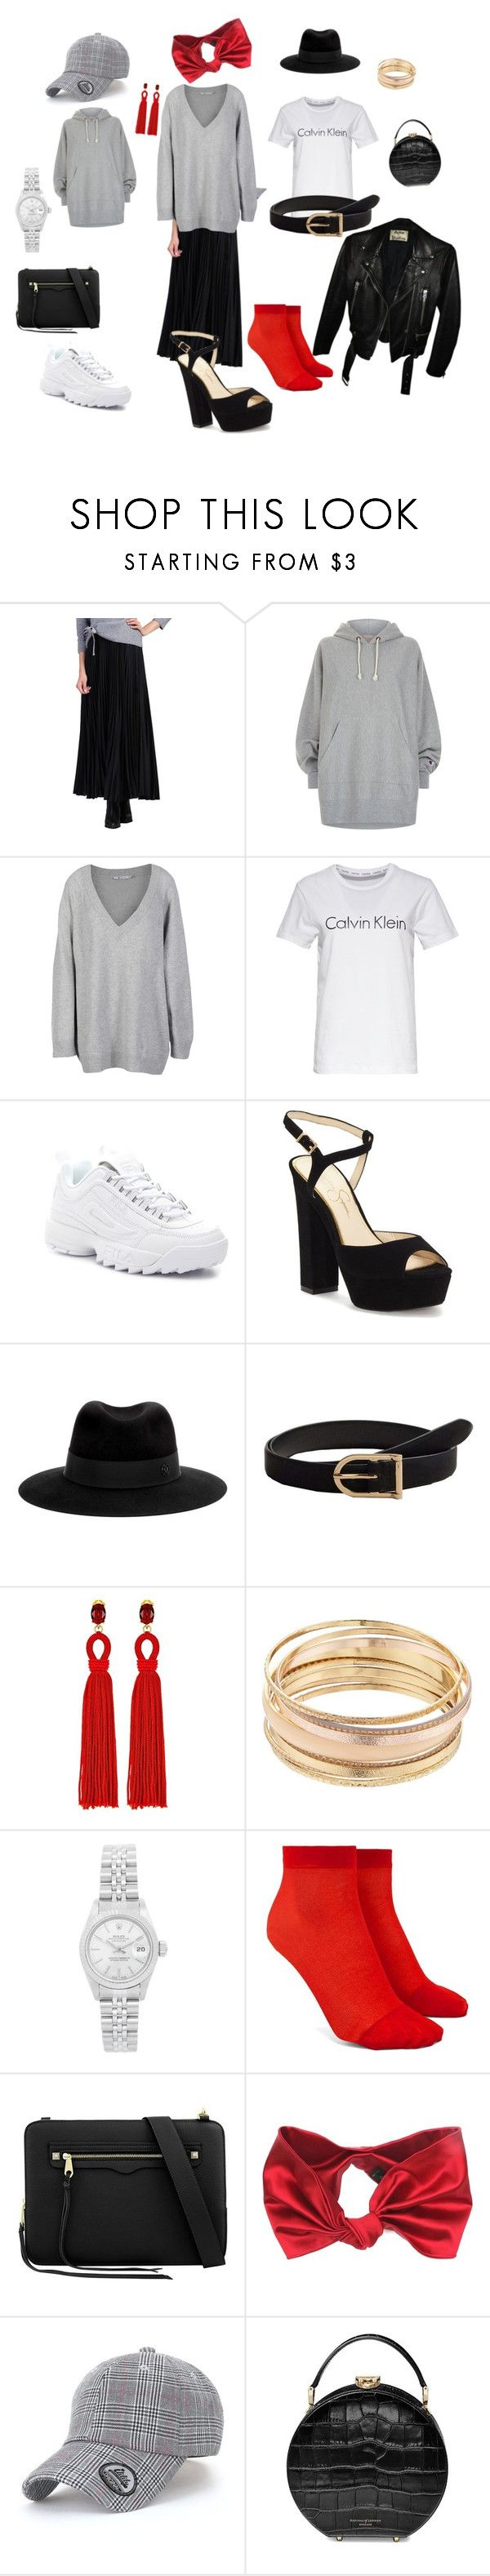 """""""Midi skirt. Outfit for spring"""" by samoyed-88-88 ❤ liked on Polyvore featuring Jolie Moi, Champion, T By Alexander Wang, Calvin Klein, Fila, Jessica Simpson, Maison Michel, MANGO, Oscar de la Renta and Mudd"""